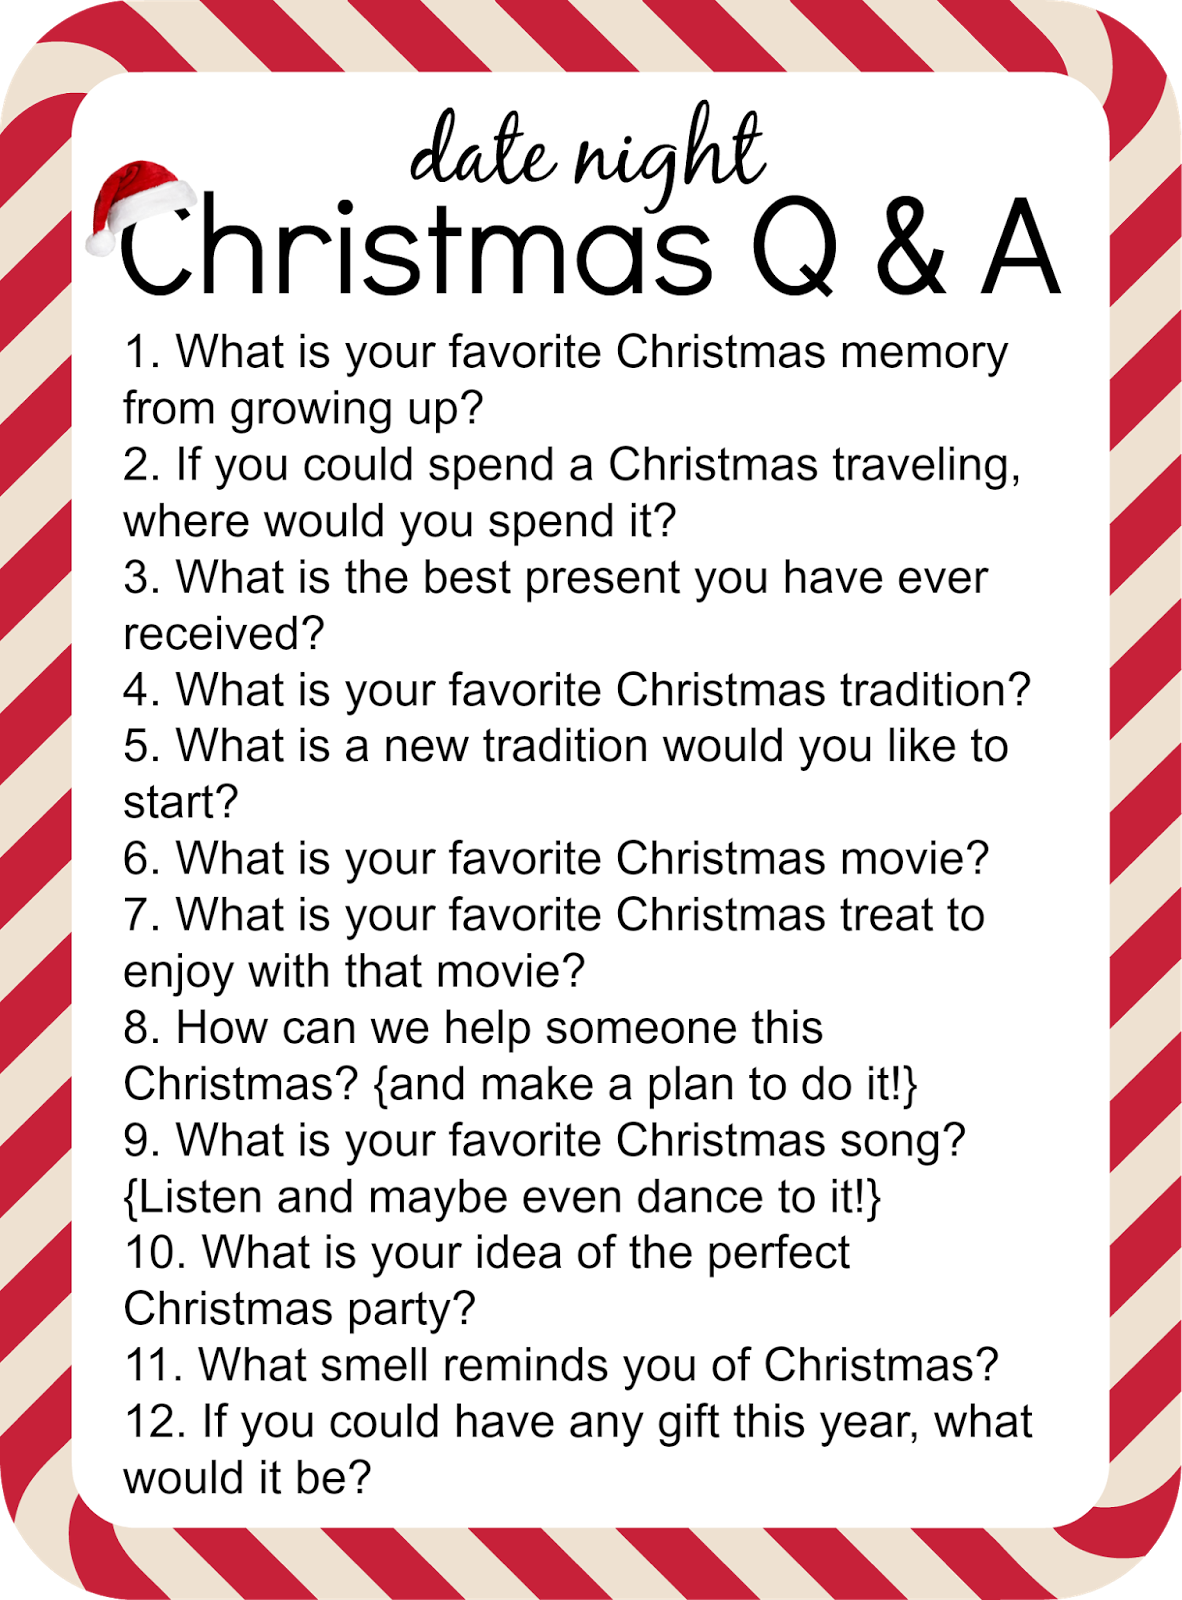 Christmas Questions To Ask.At Home Date Night With Fun Questions To